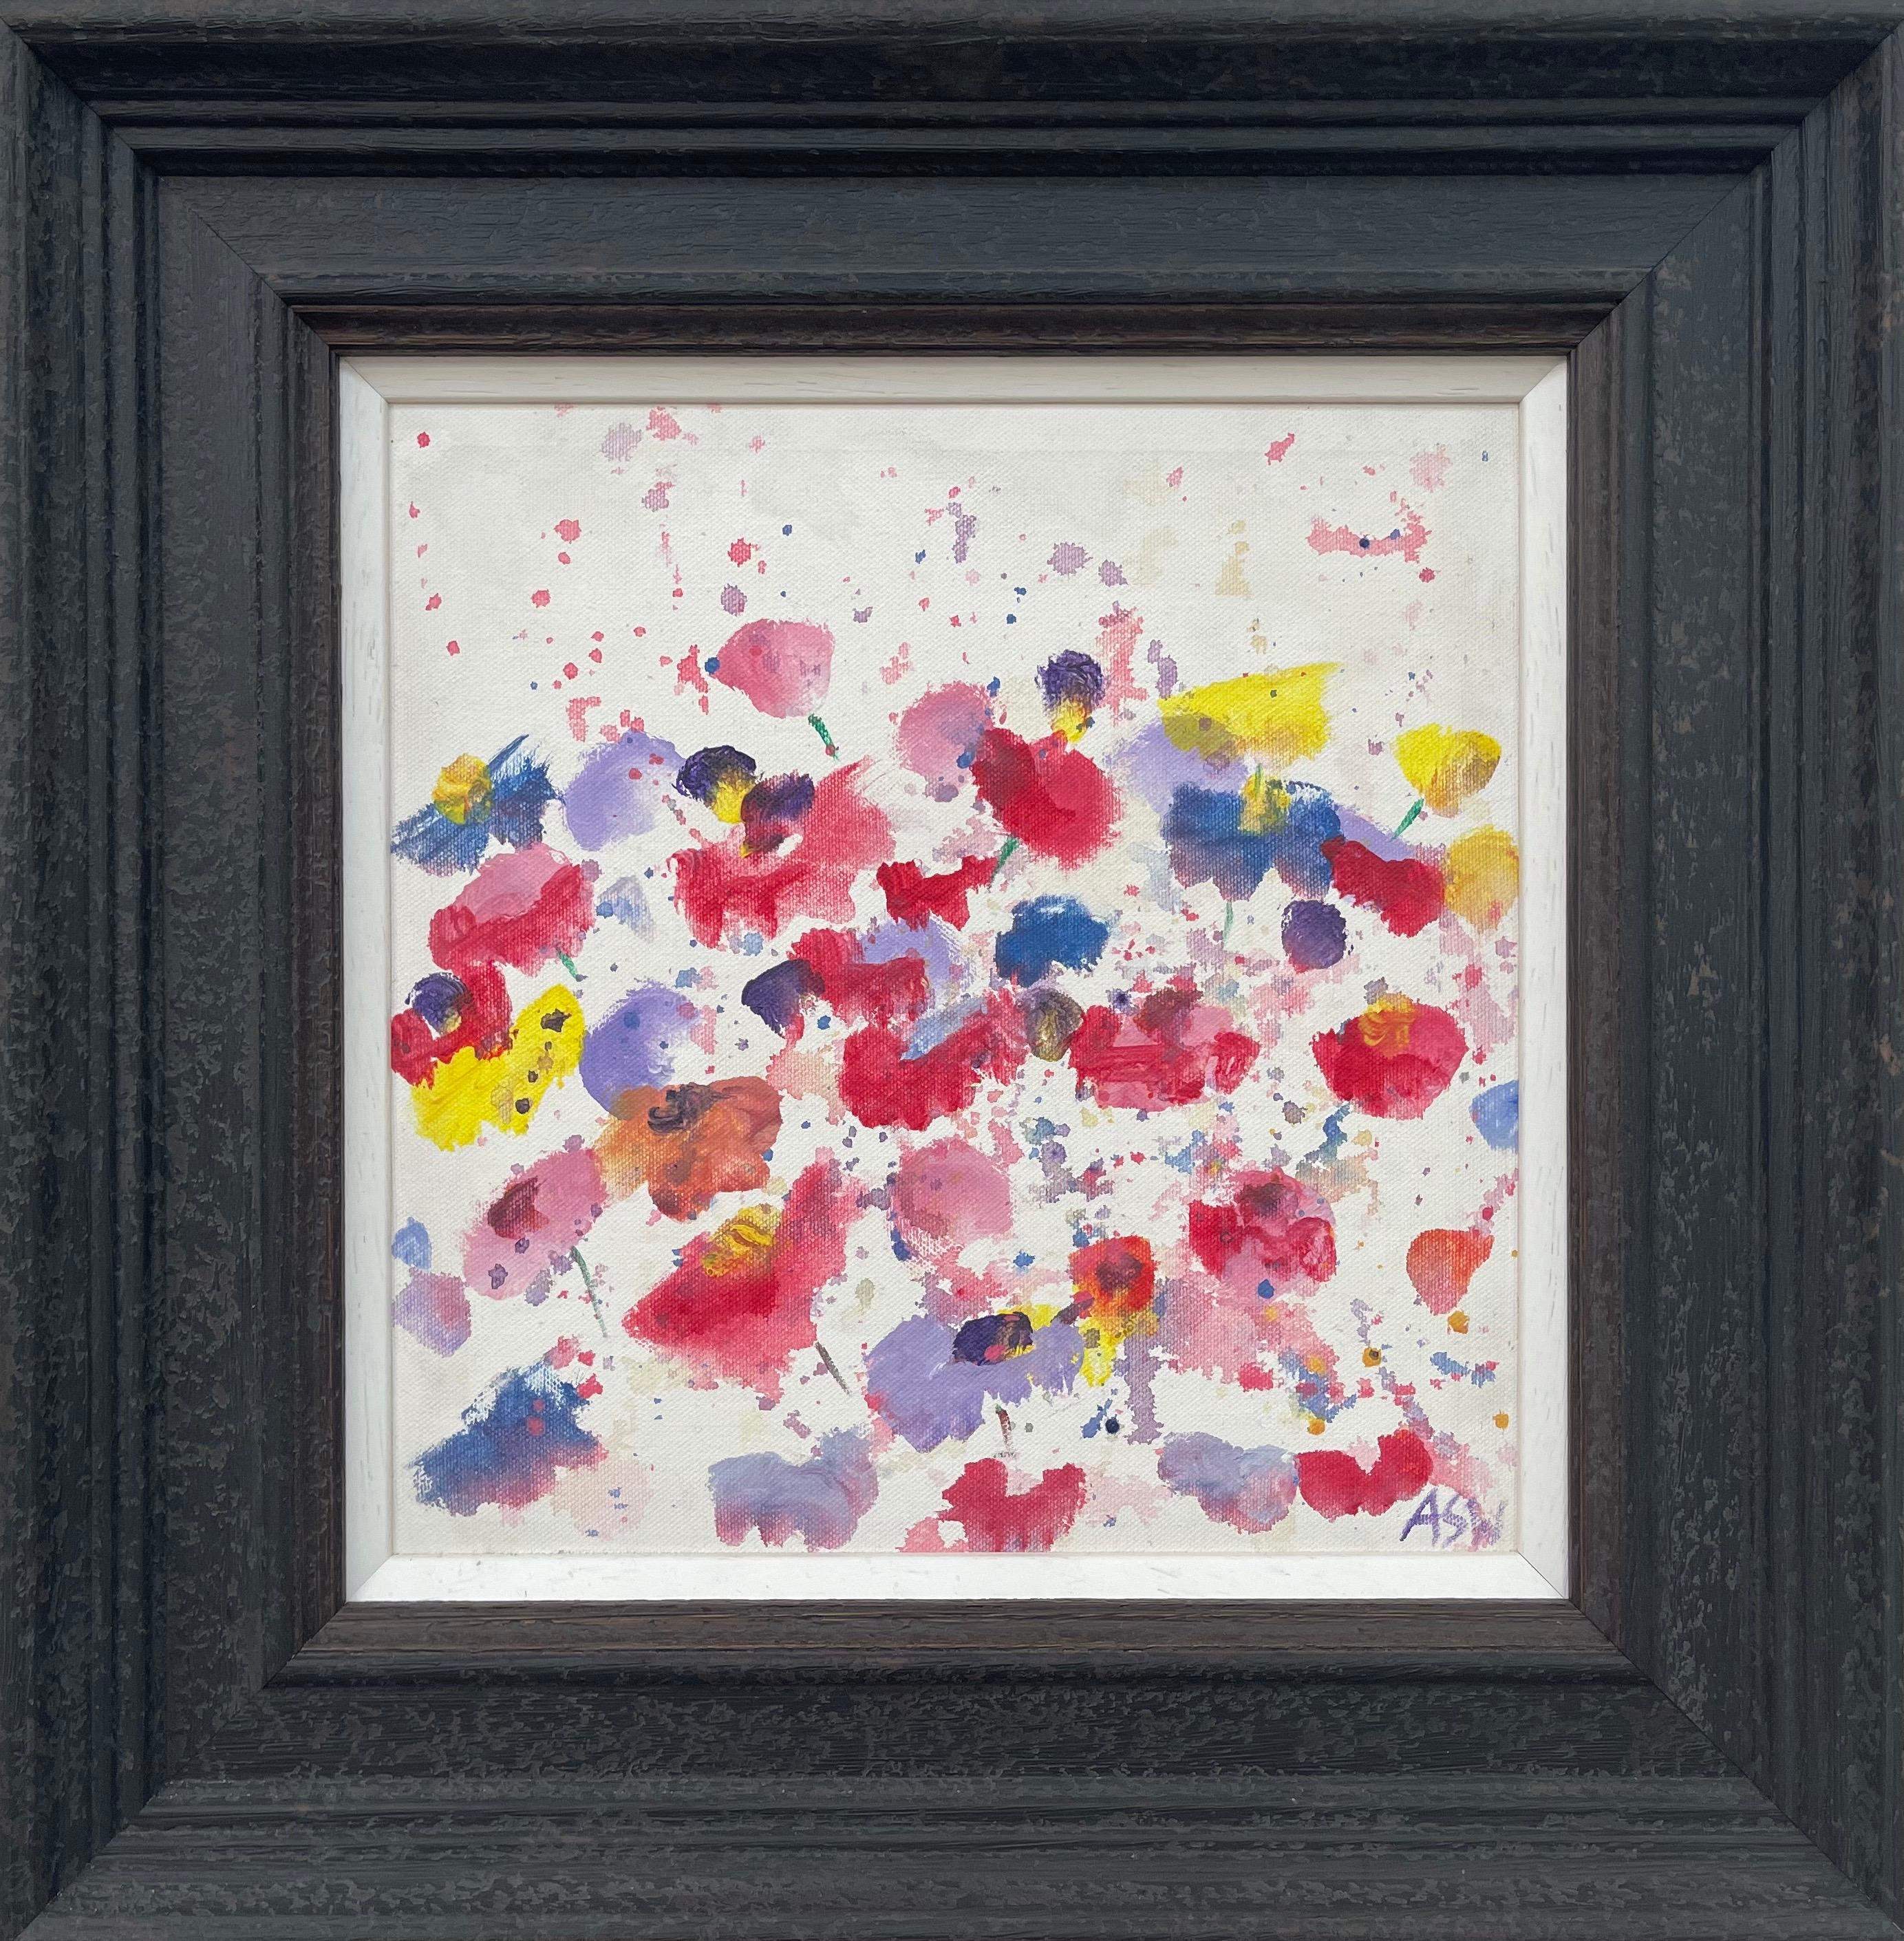 Abstract Red Blue Yellow Flower Design on White by British Contemporary Artist